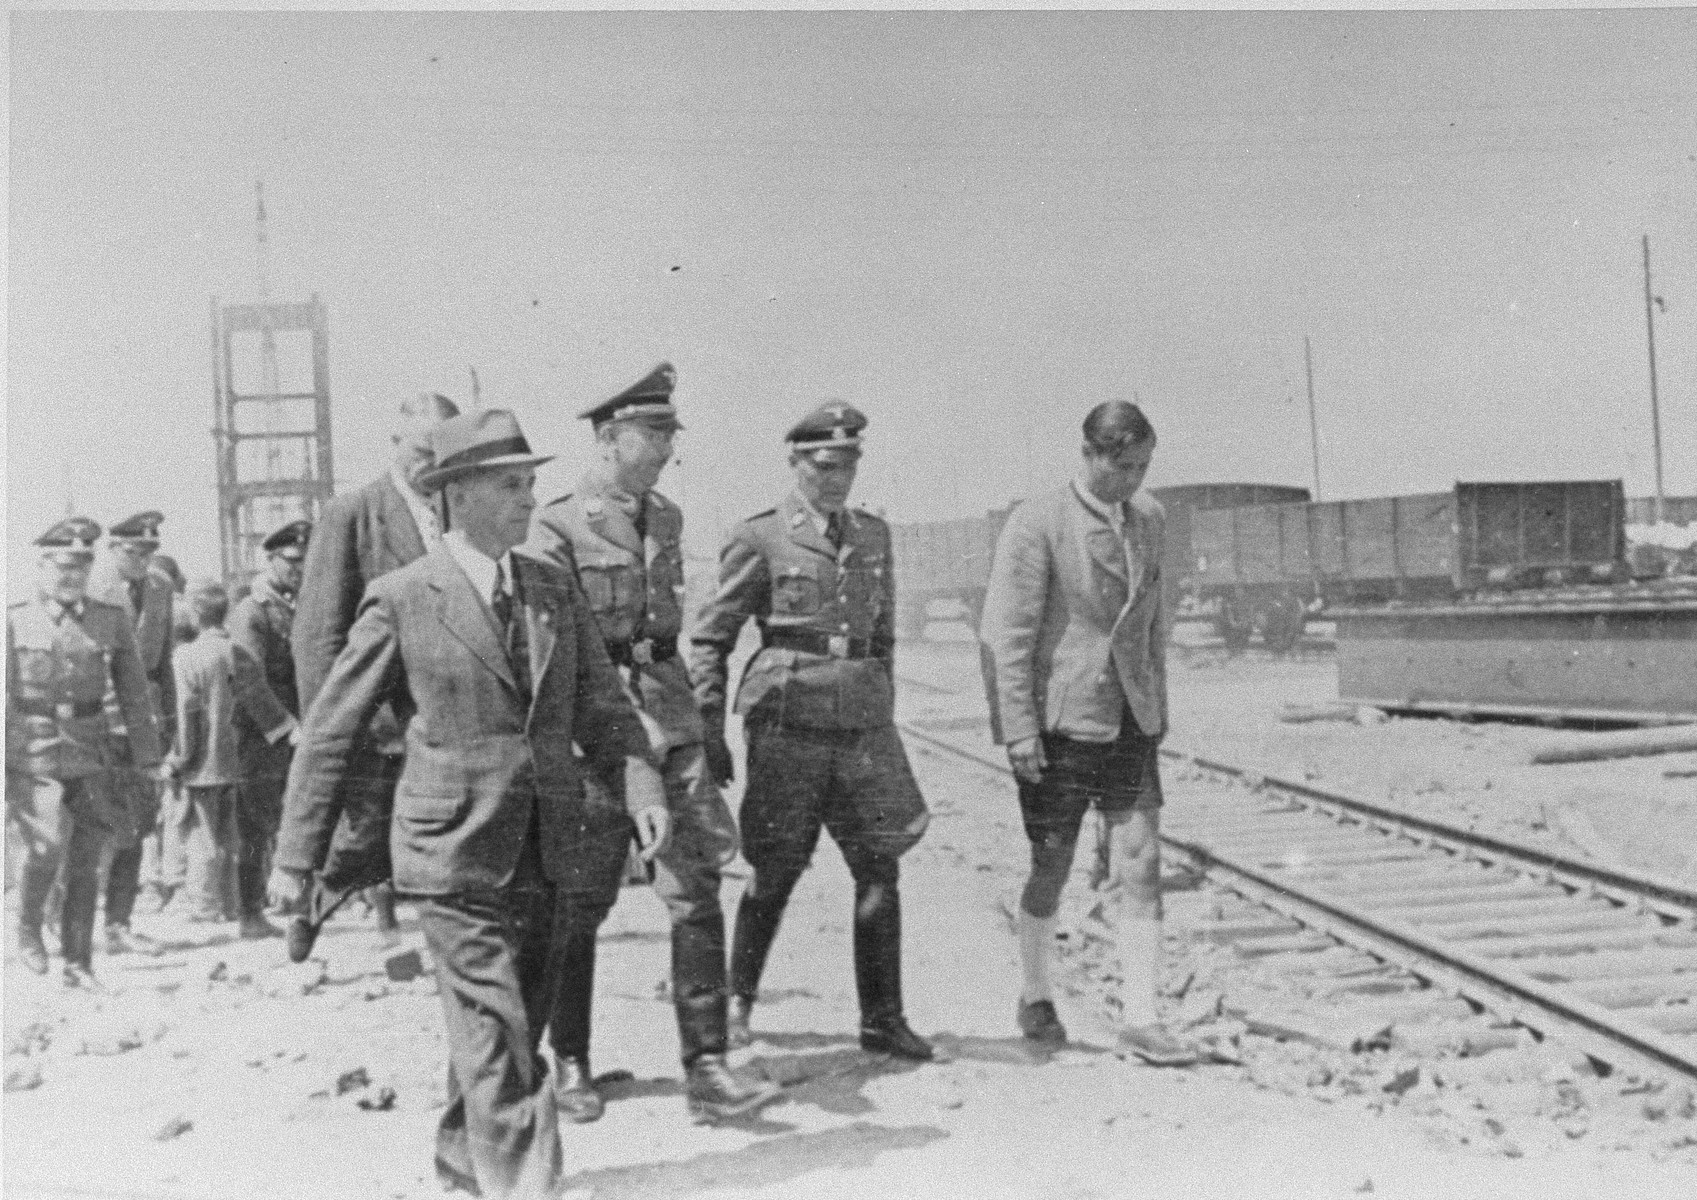 Reichsfuehrer SS Heinrich Himmler tours the Monowitz-Buna building site in the company of Max Faust (wearing the fedora) and Auschwitz commandant Rudolf Hoess (second from the right in the first row).   Faust, who was an IG Farben engineer, was the head of building operations at Monowitz-Buna.